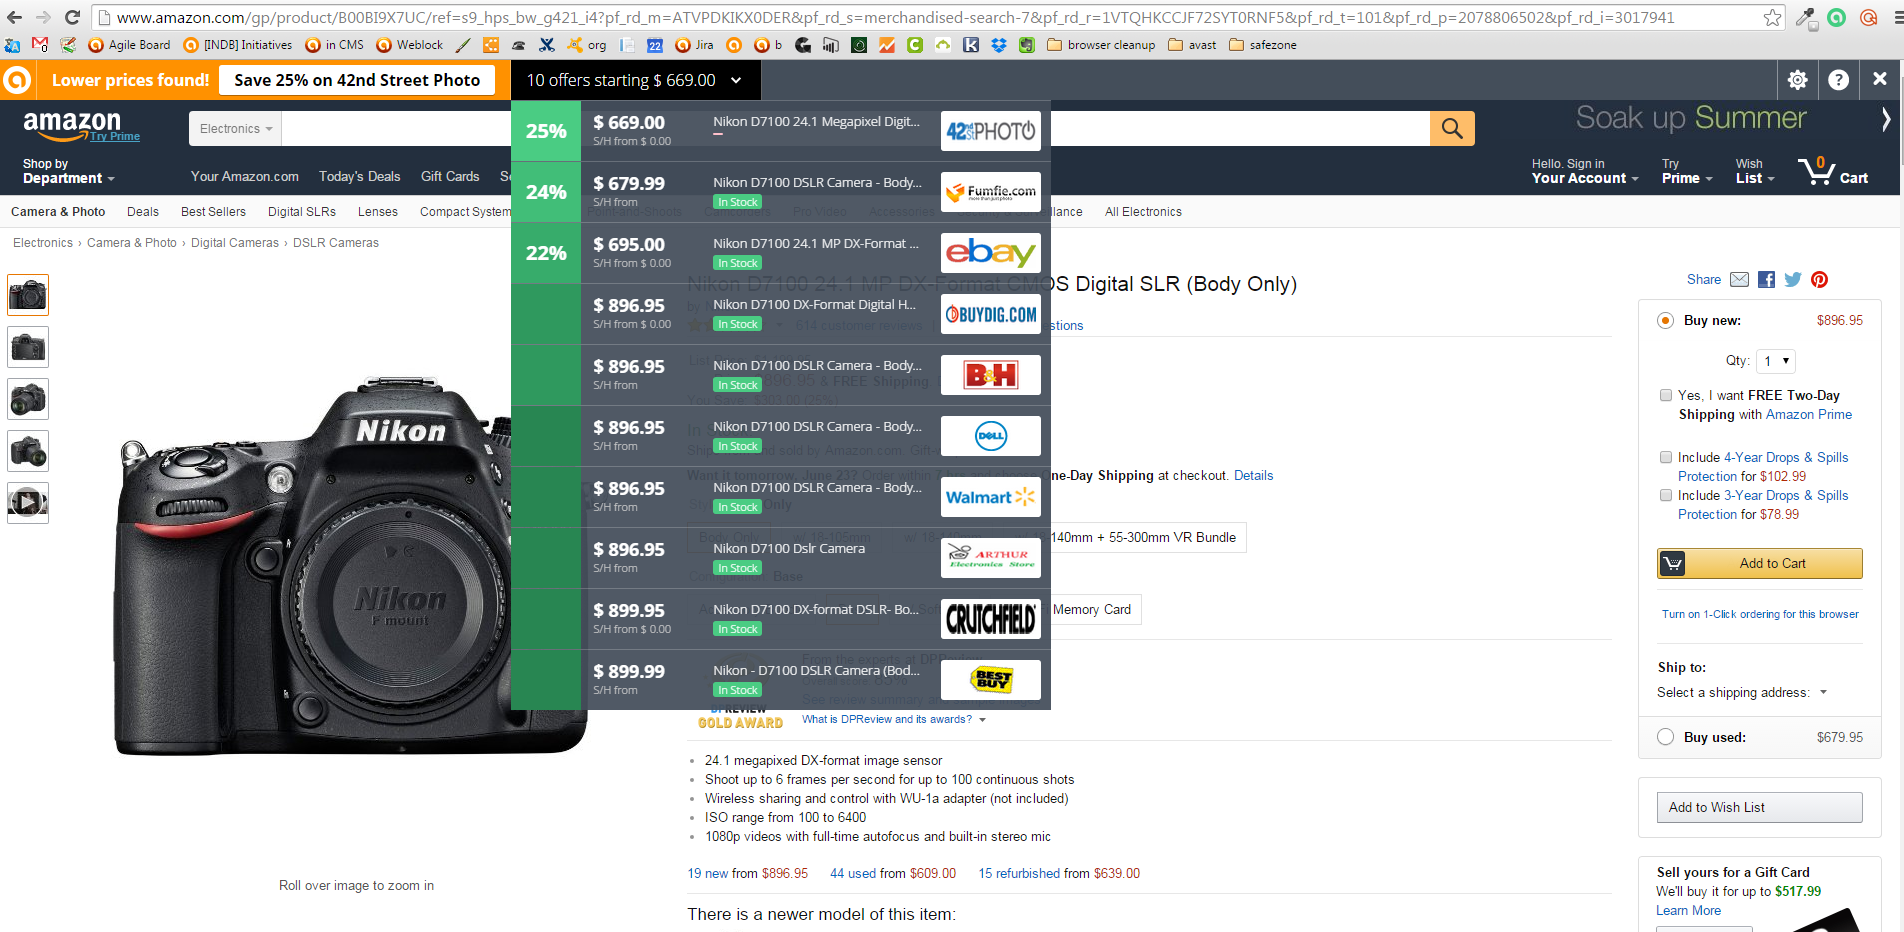 Avast SafePrice finds the best prices from trusted retailers